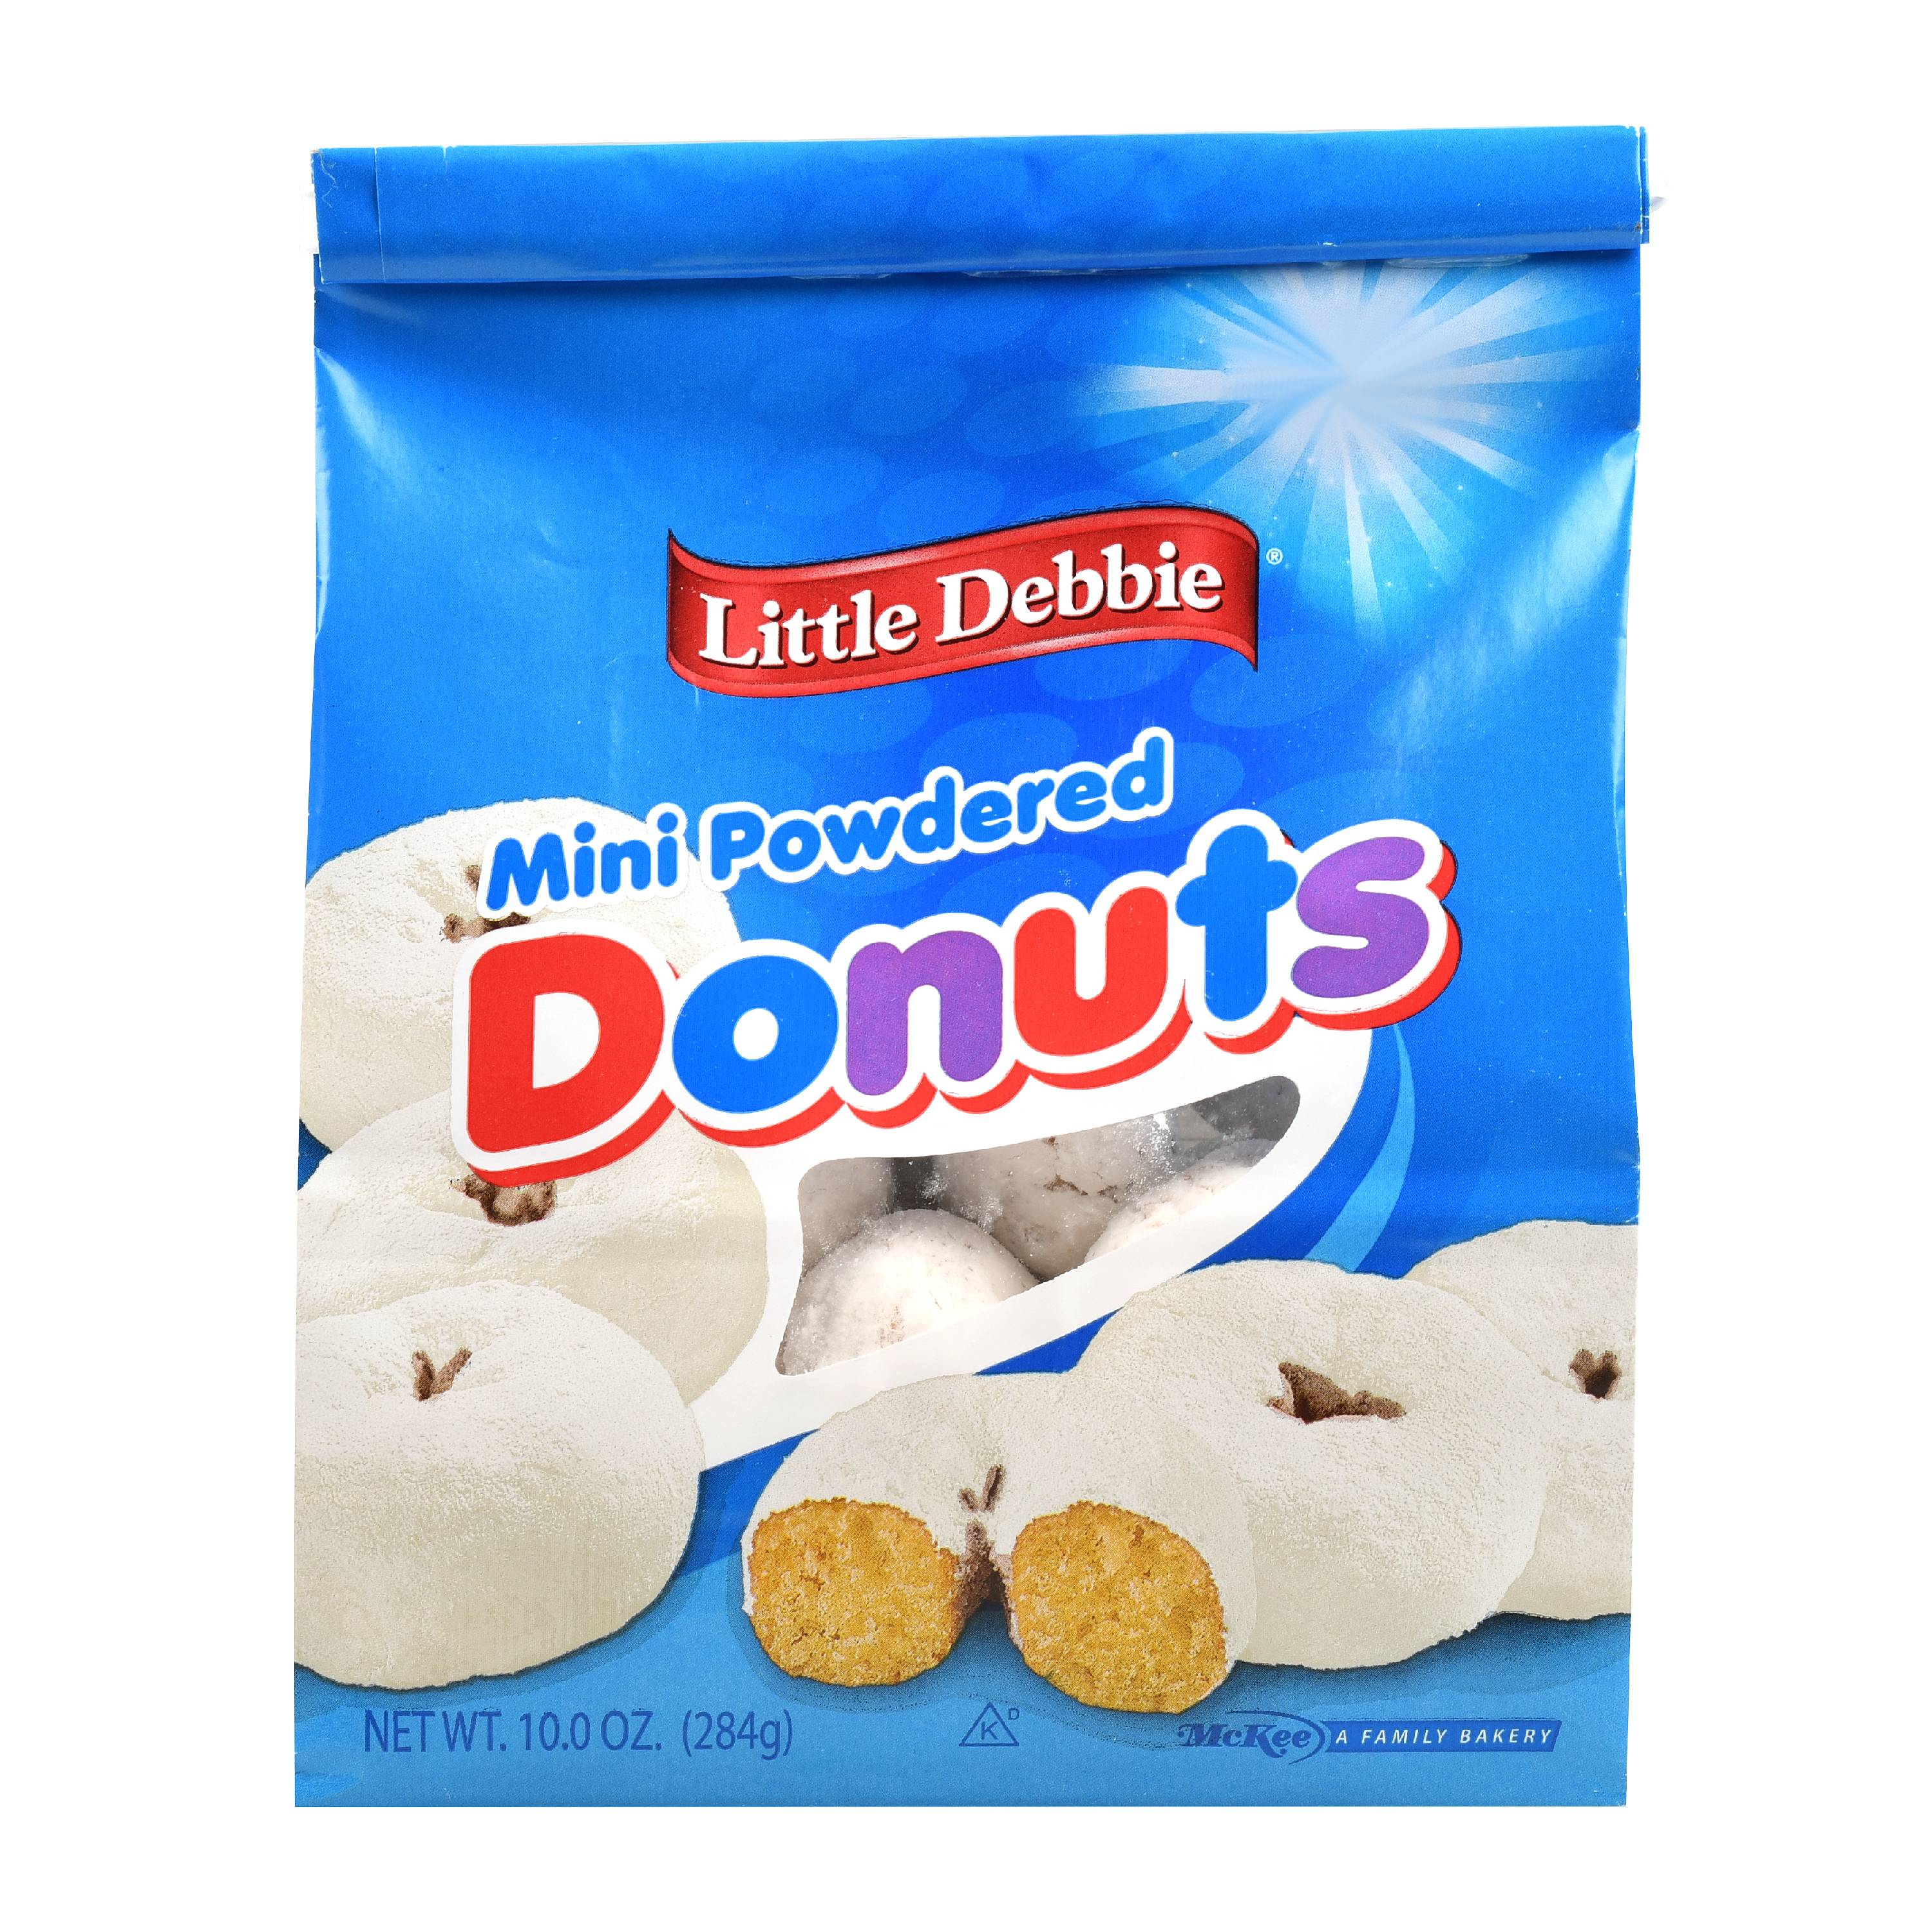 Little Debbie Snacks Mini Powdered Donuts, 10 oz